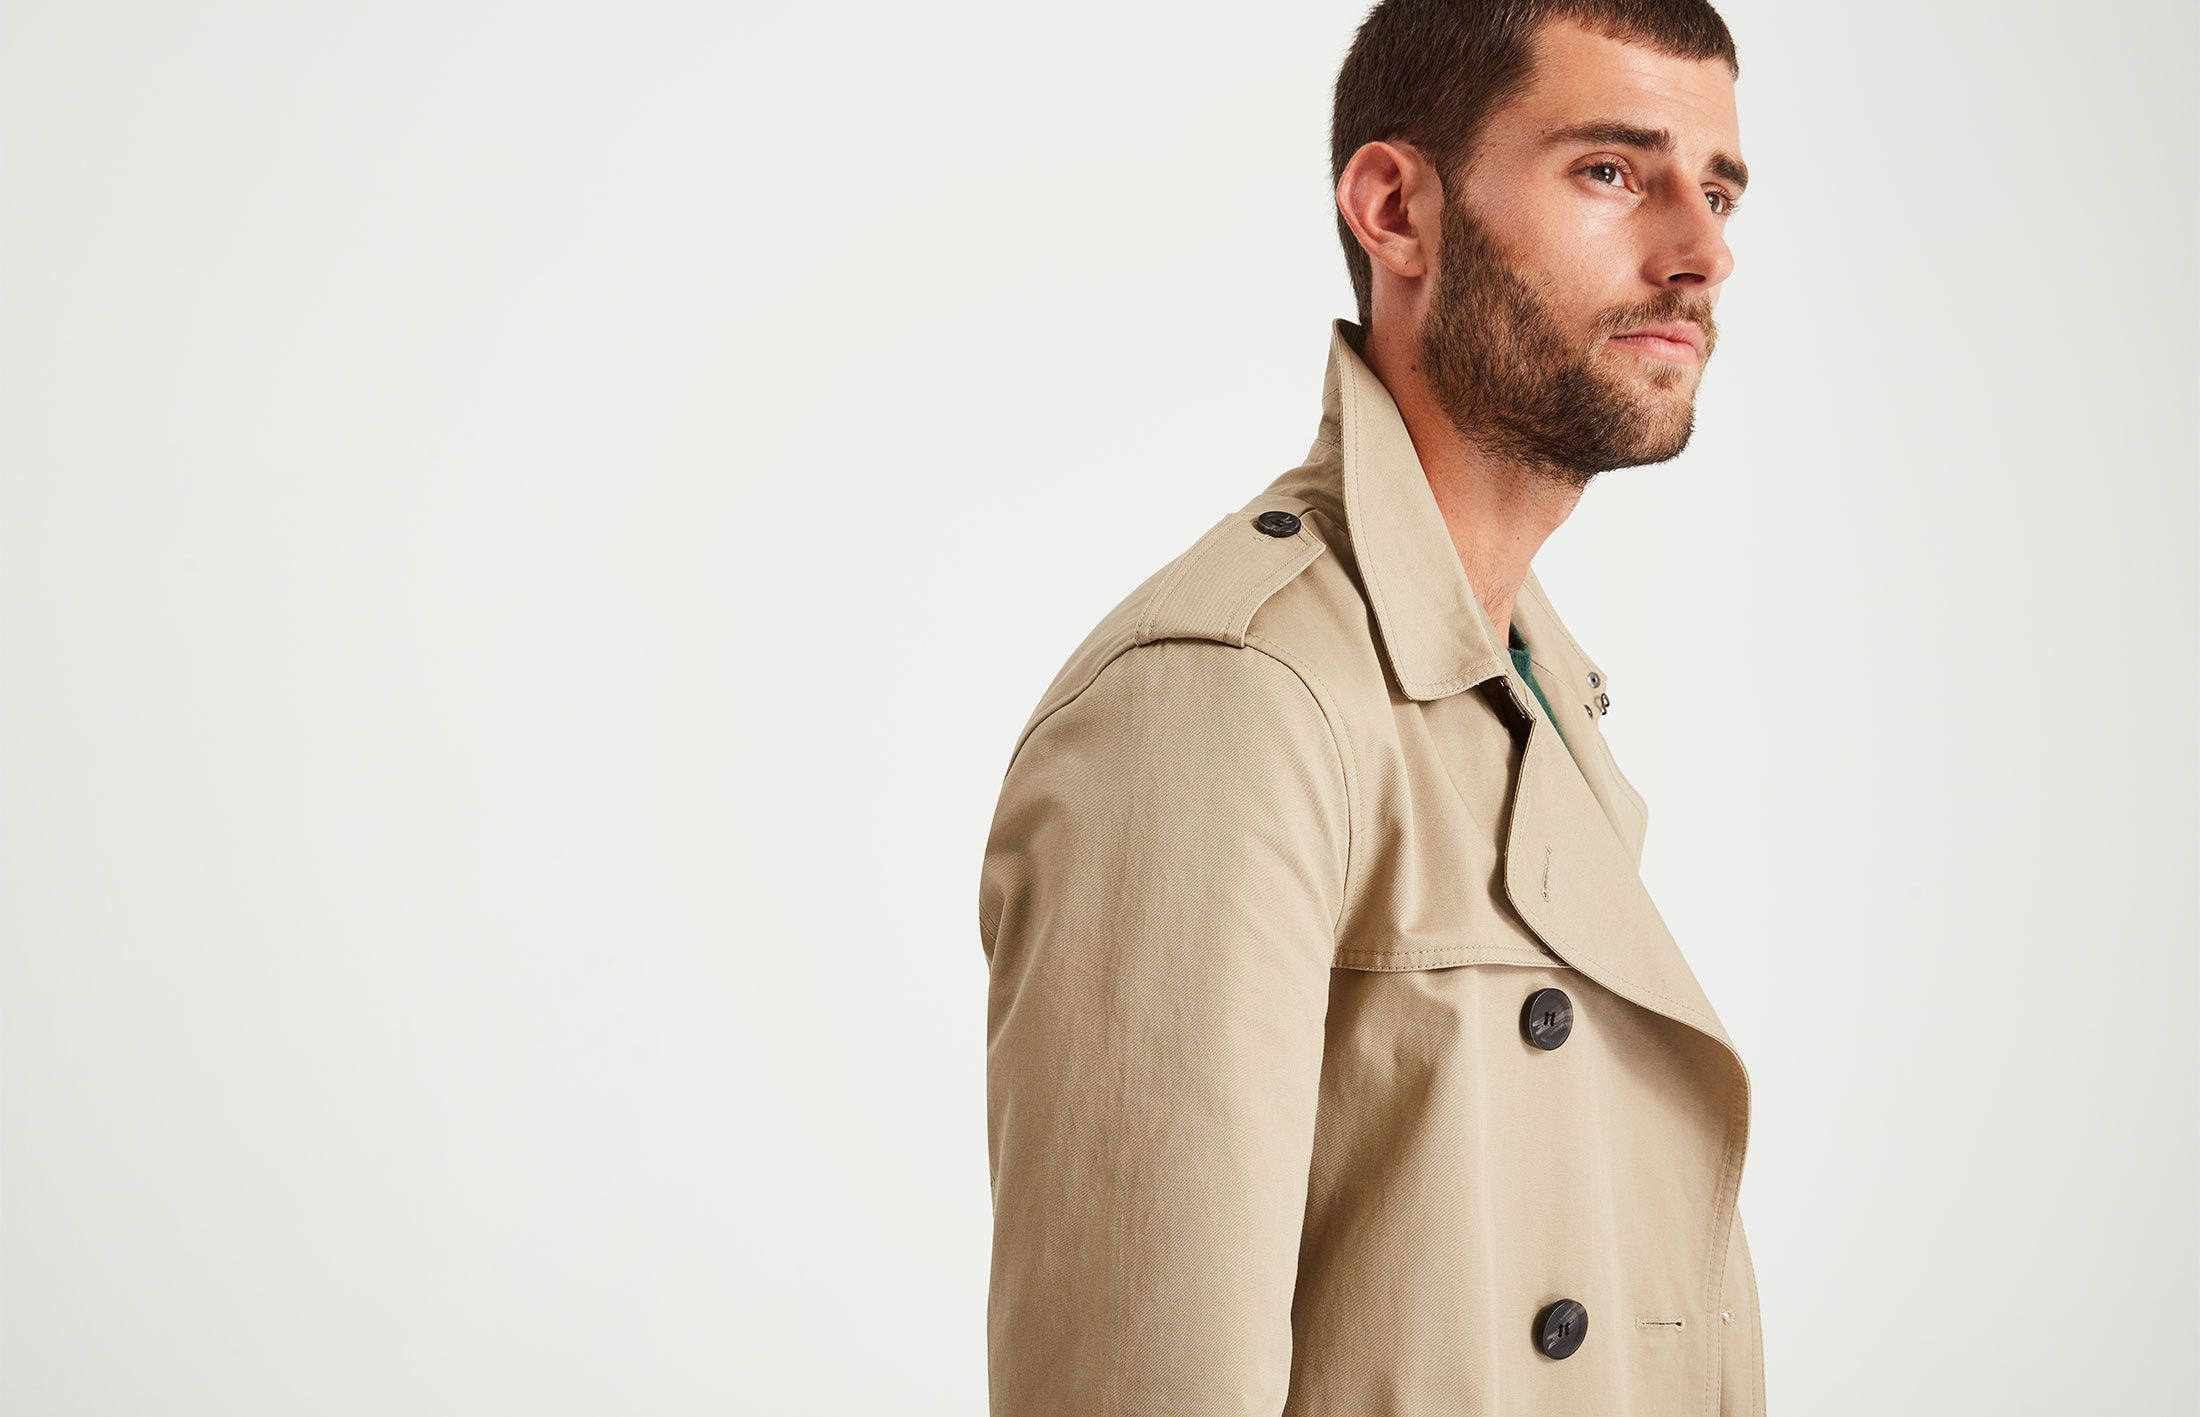 Introducing our new collection of autumn-ready staples